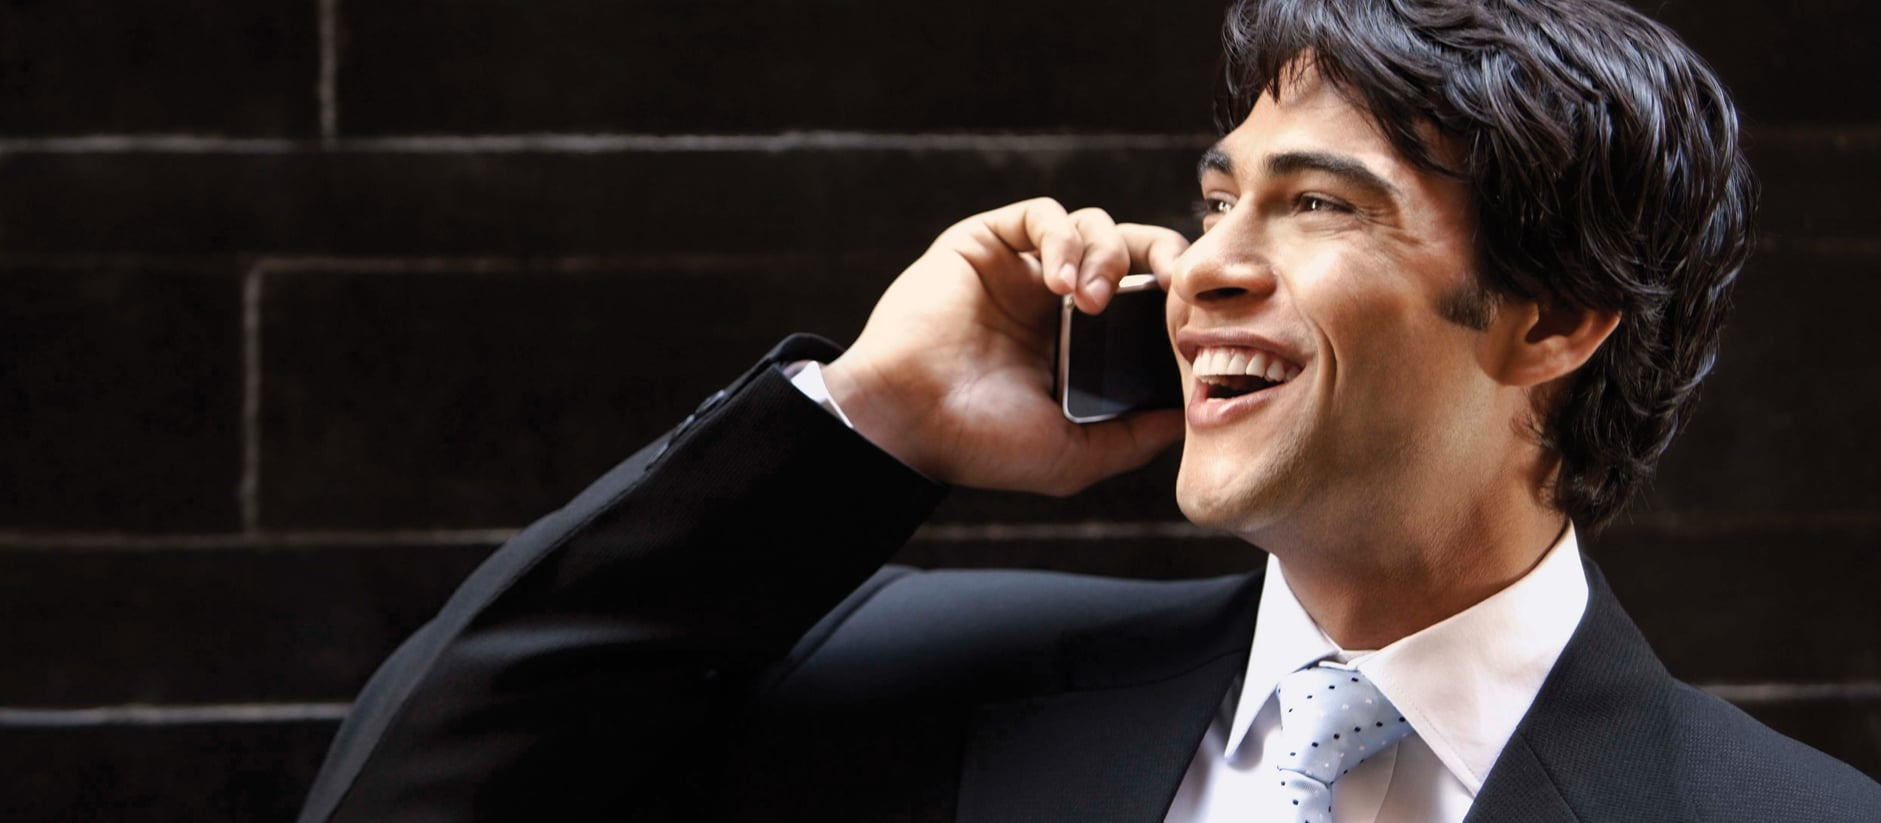 A man smiling while receiving his forwarded call